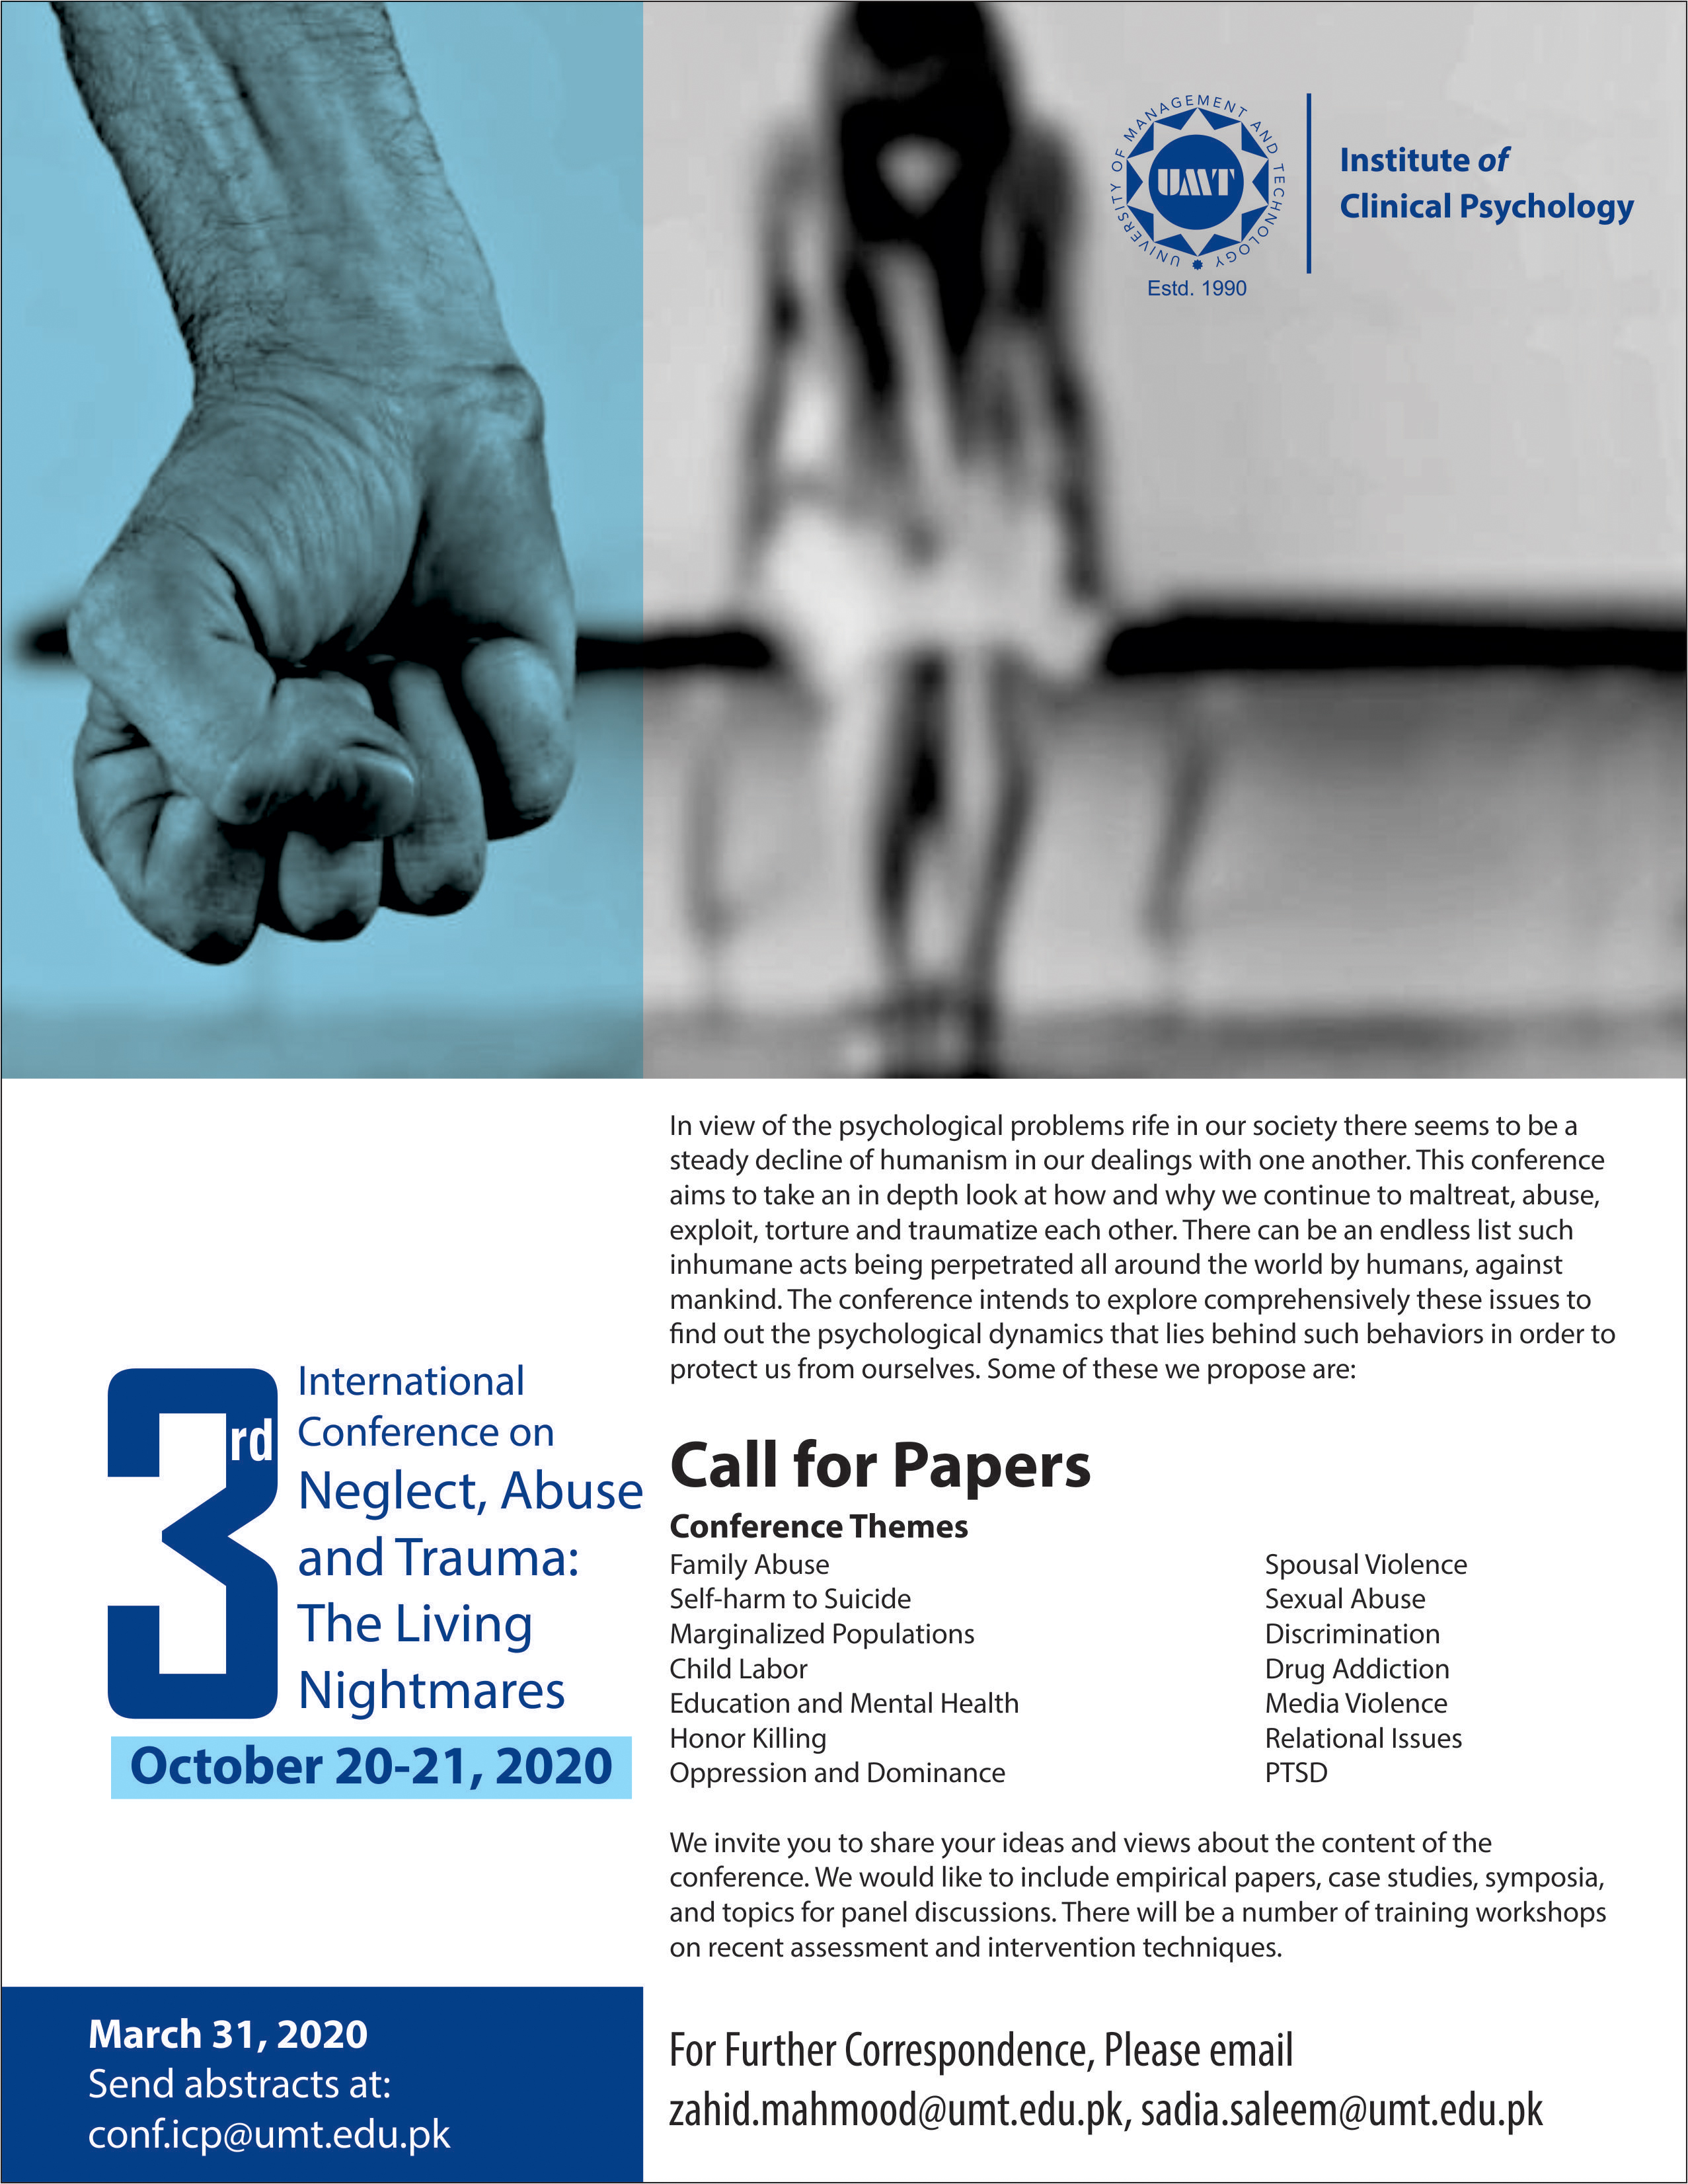 3rd International Conference on Neglect, Abuse and Trauma: The Living Nightmares (October 20-21, 2020)